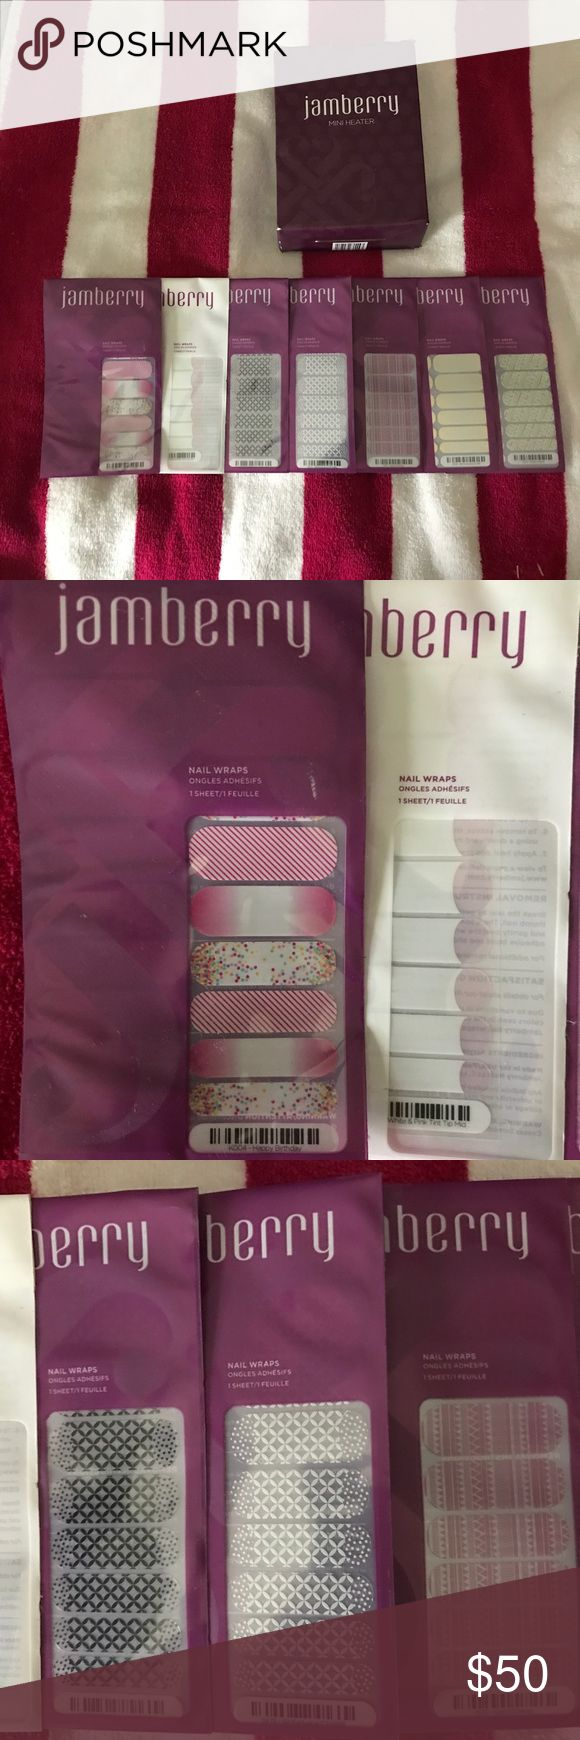 Jamberry Nail Wrap kit Jamberry mini heater for wrap application (gently used), and 7 new wraps! Only 2 available online- shown in screen shots. Jamberry Makeup